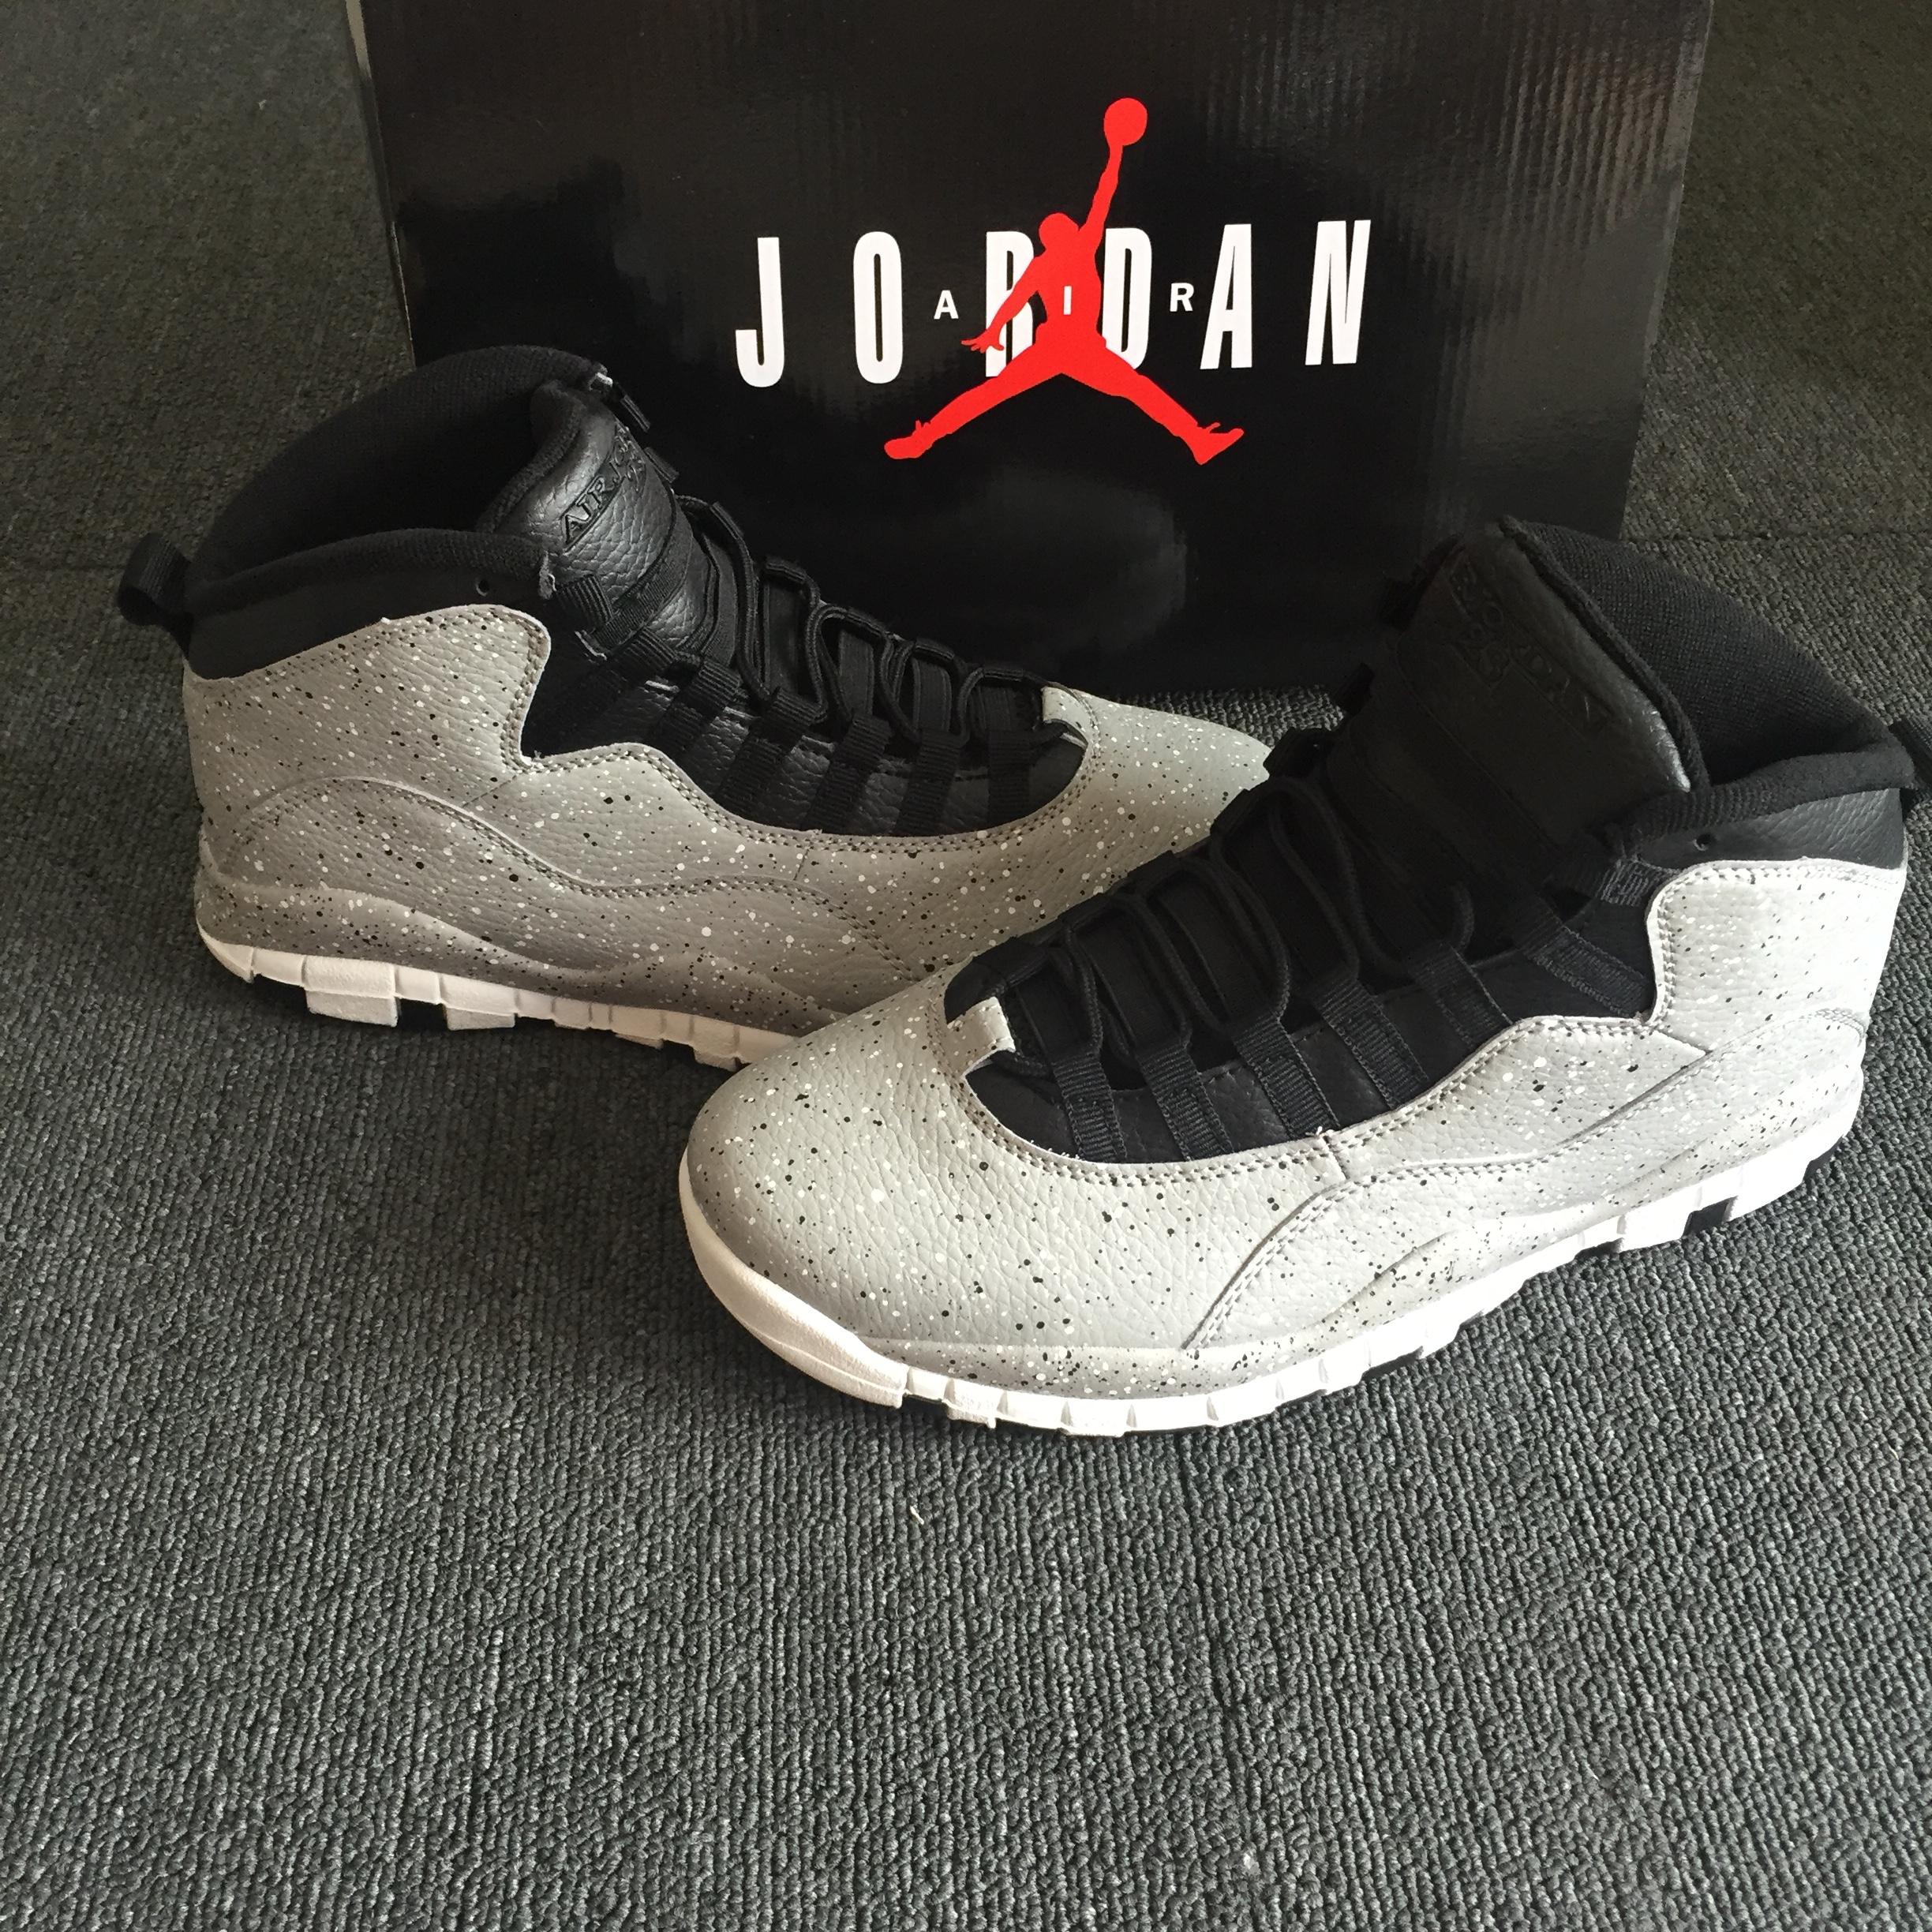 2018 Men Jordan 10 Grey Black Shoes